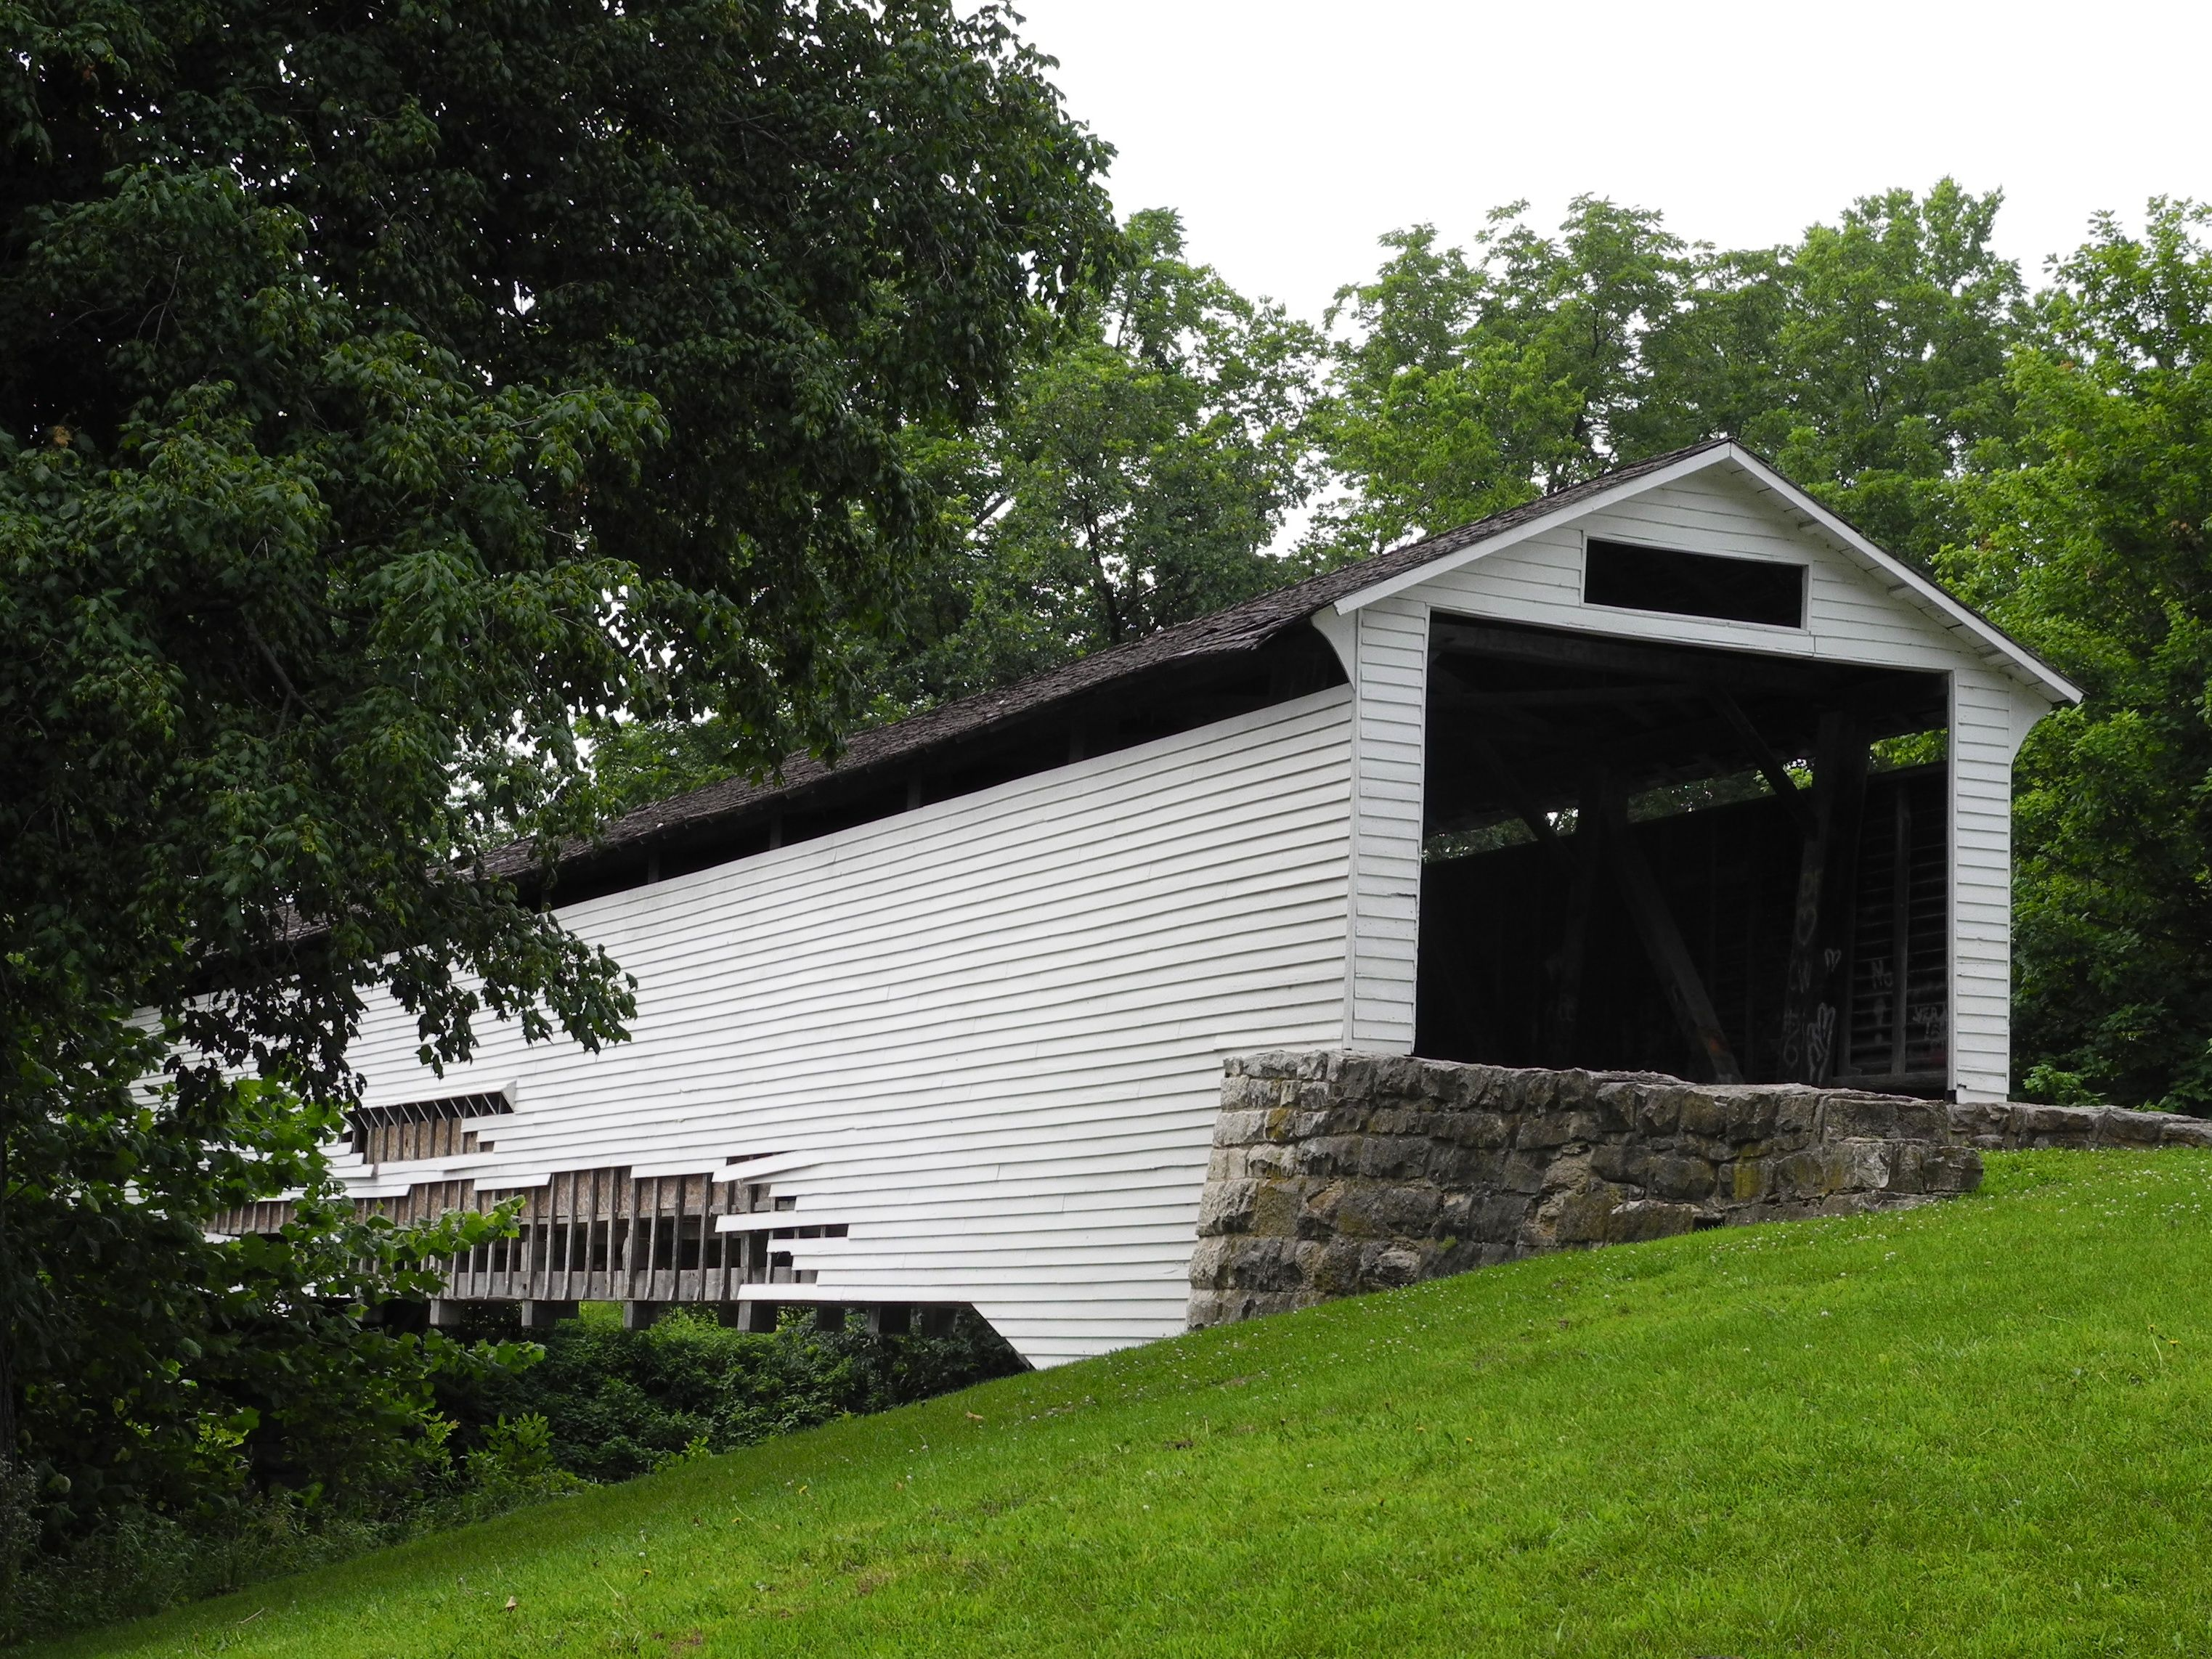 Covered bridges | File:Union Covered Bridge SHS from southeast 1.jpg - Wikipedia, the ...